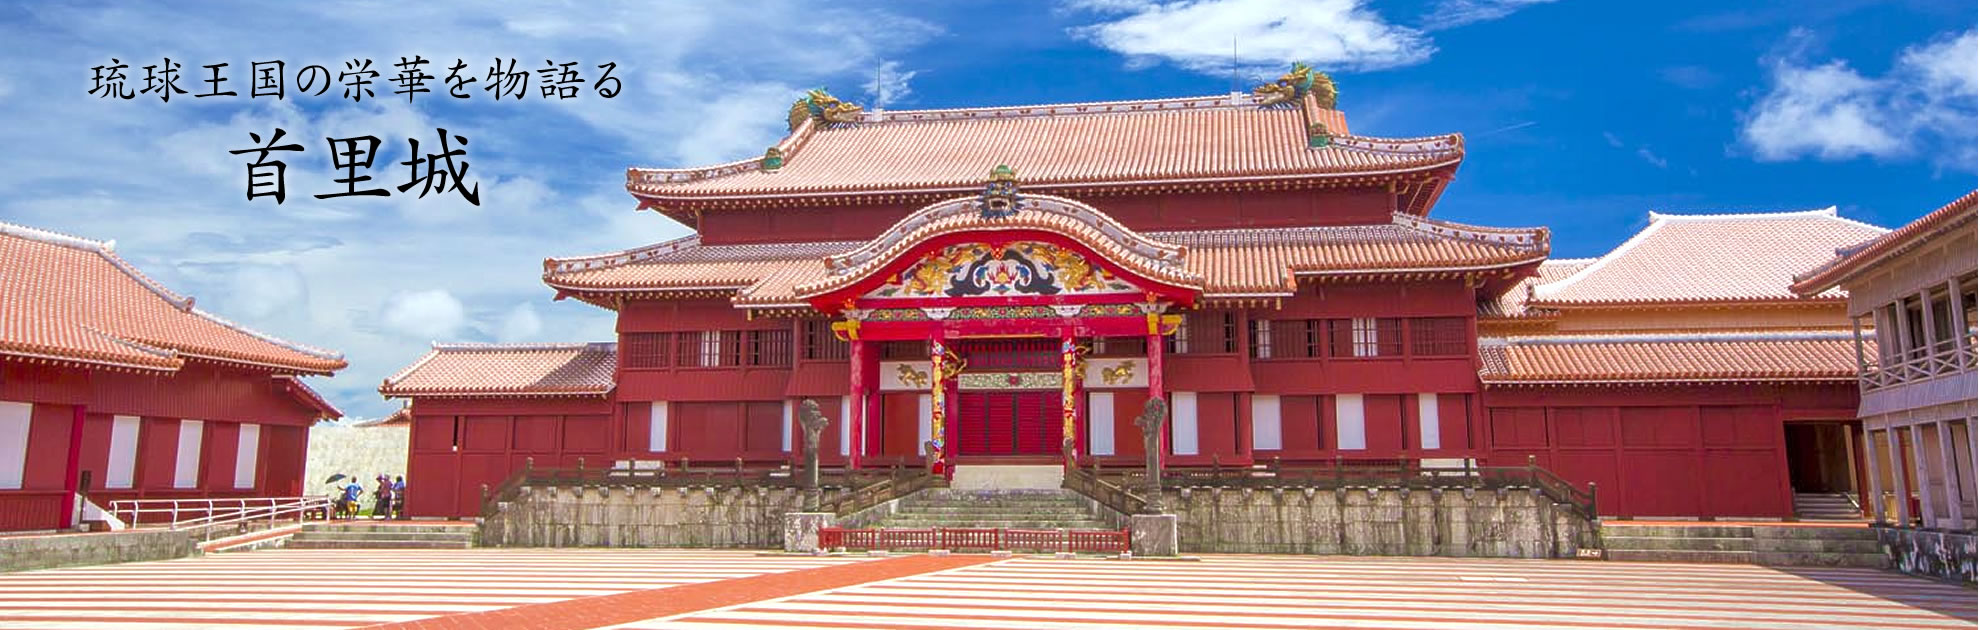 Shurijo Castle which shows glorification of Ryukyu kingdom